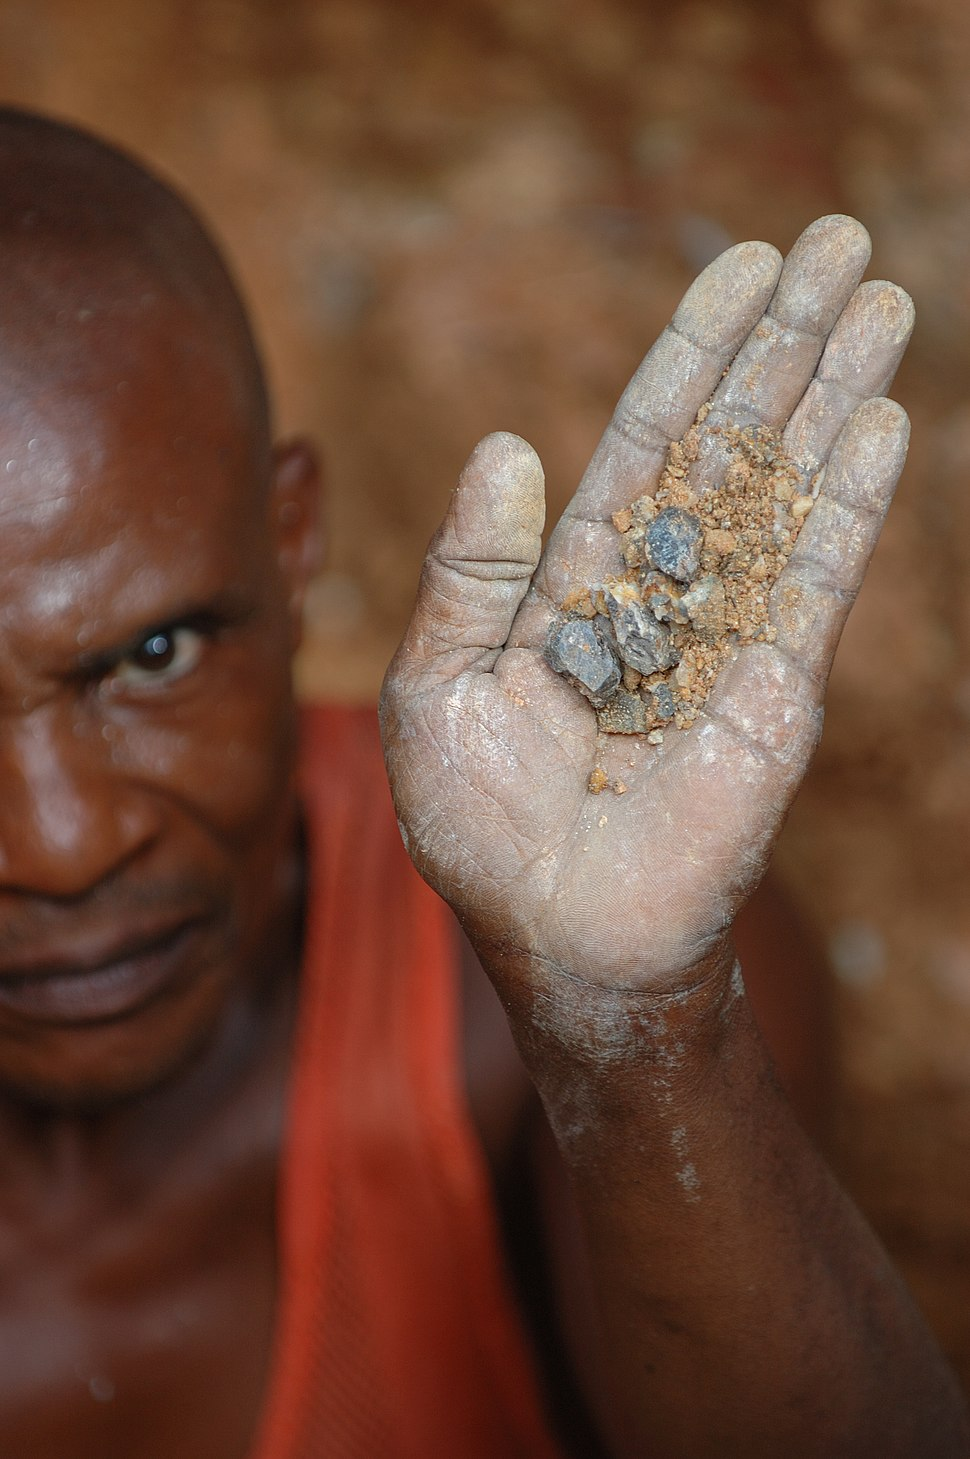 Wolframite Mining in Kailo3, DRC